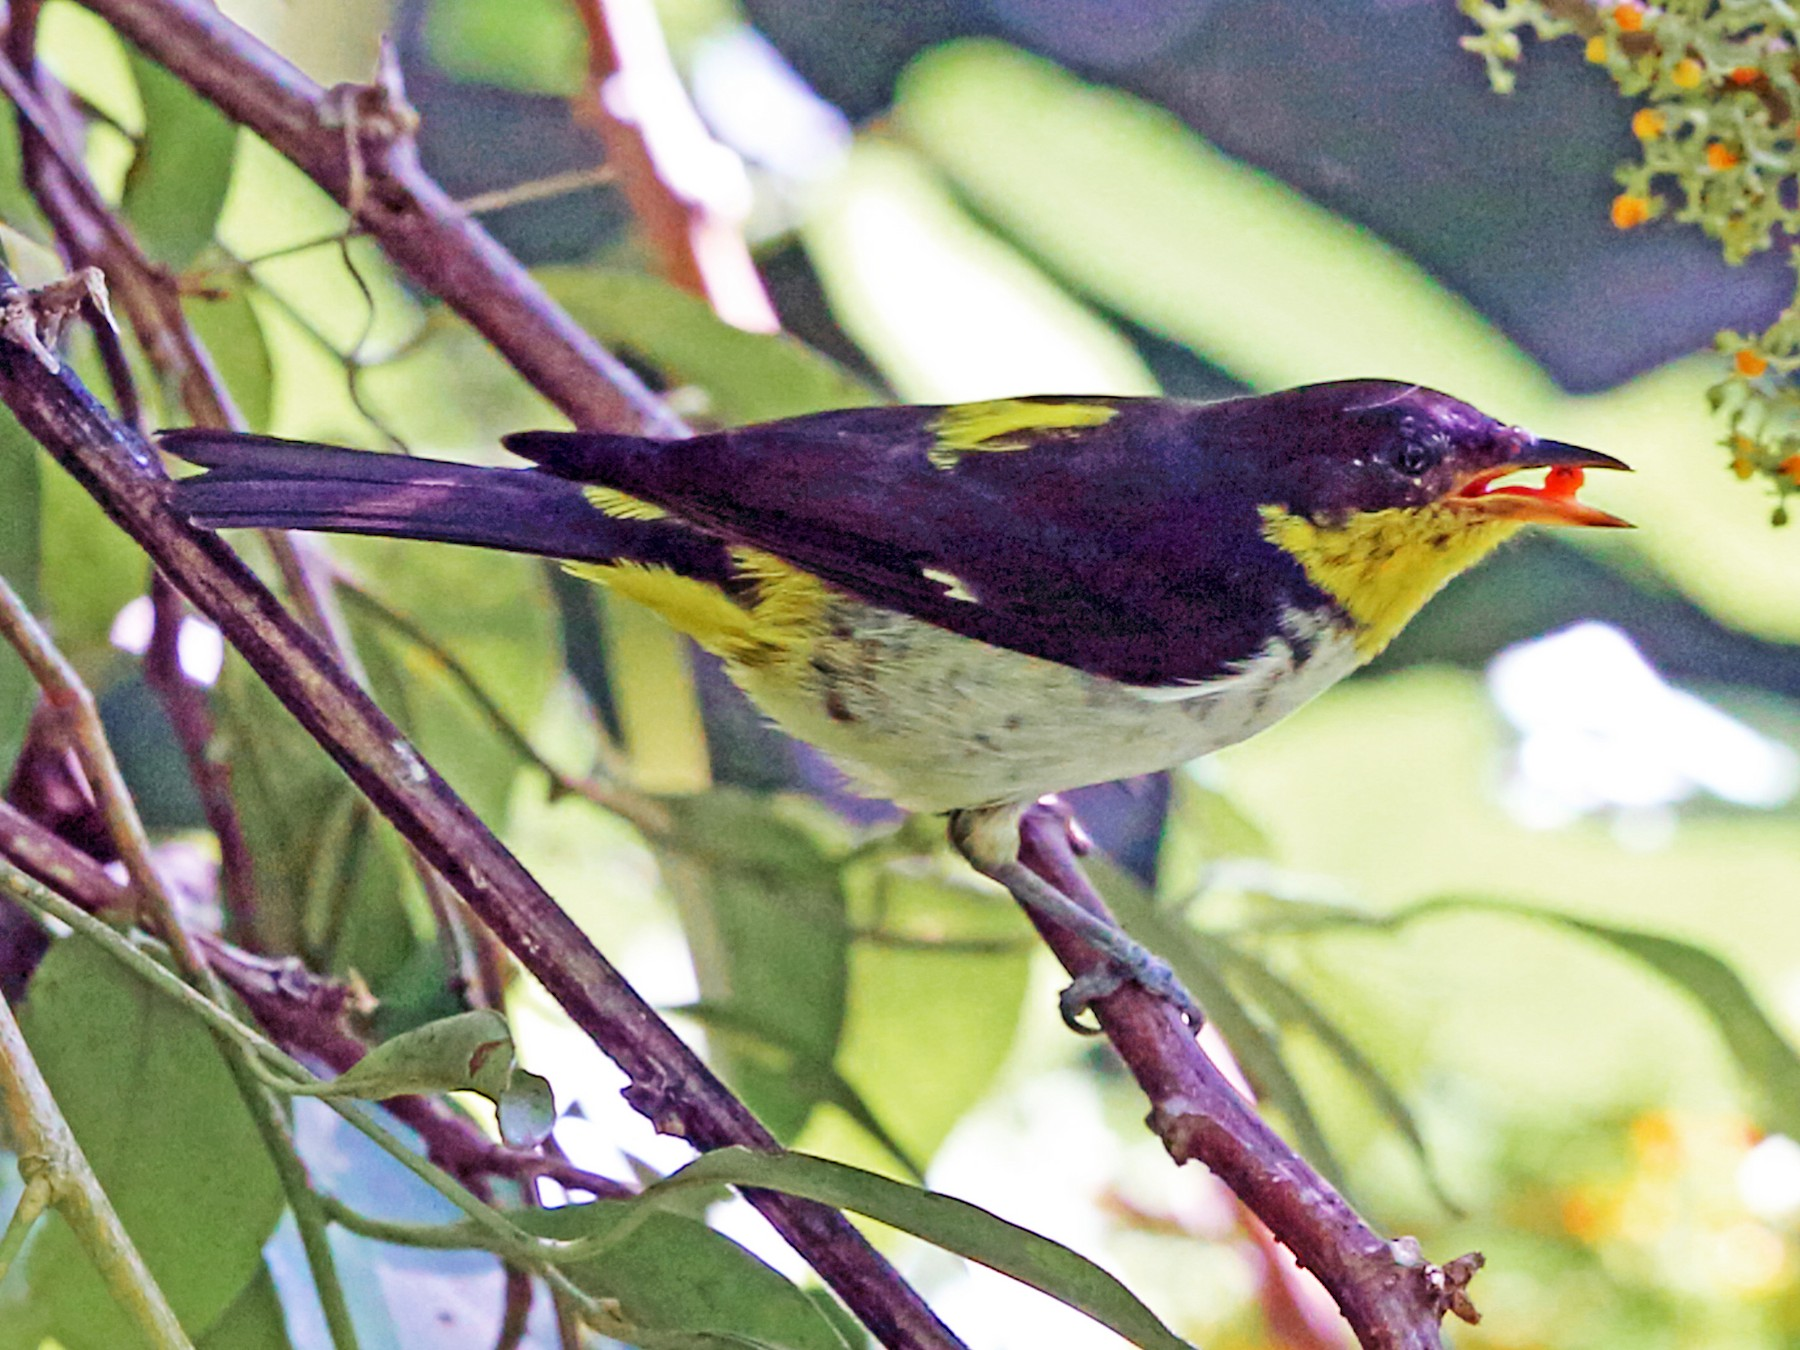 Yellow-backed Tanager - Nigel Voaden